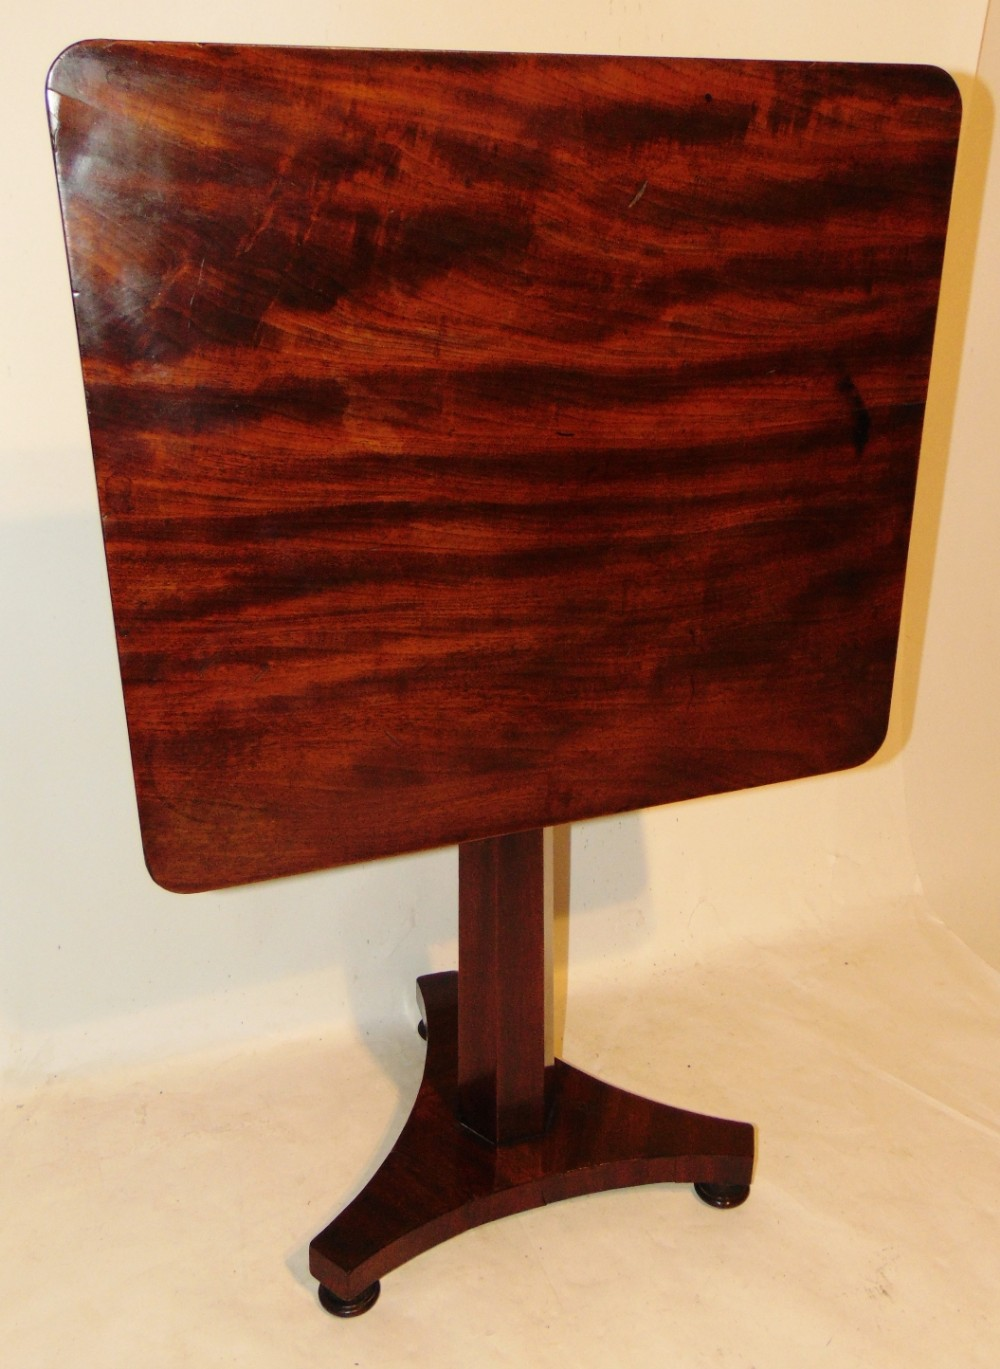 regency mahogany pedestal table circa 1820